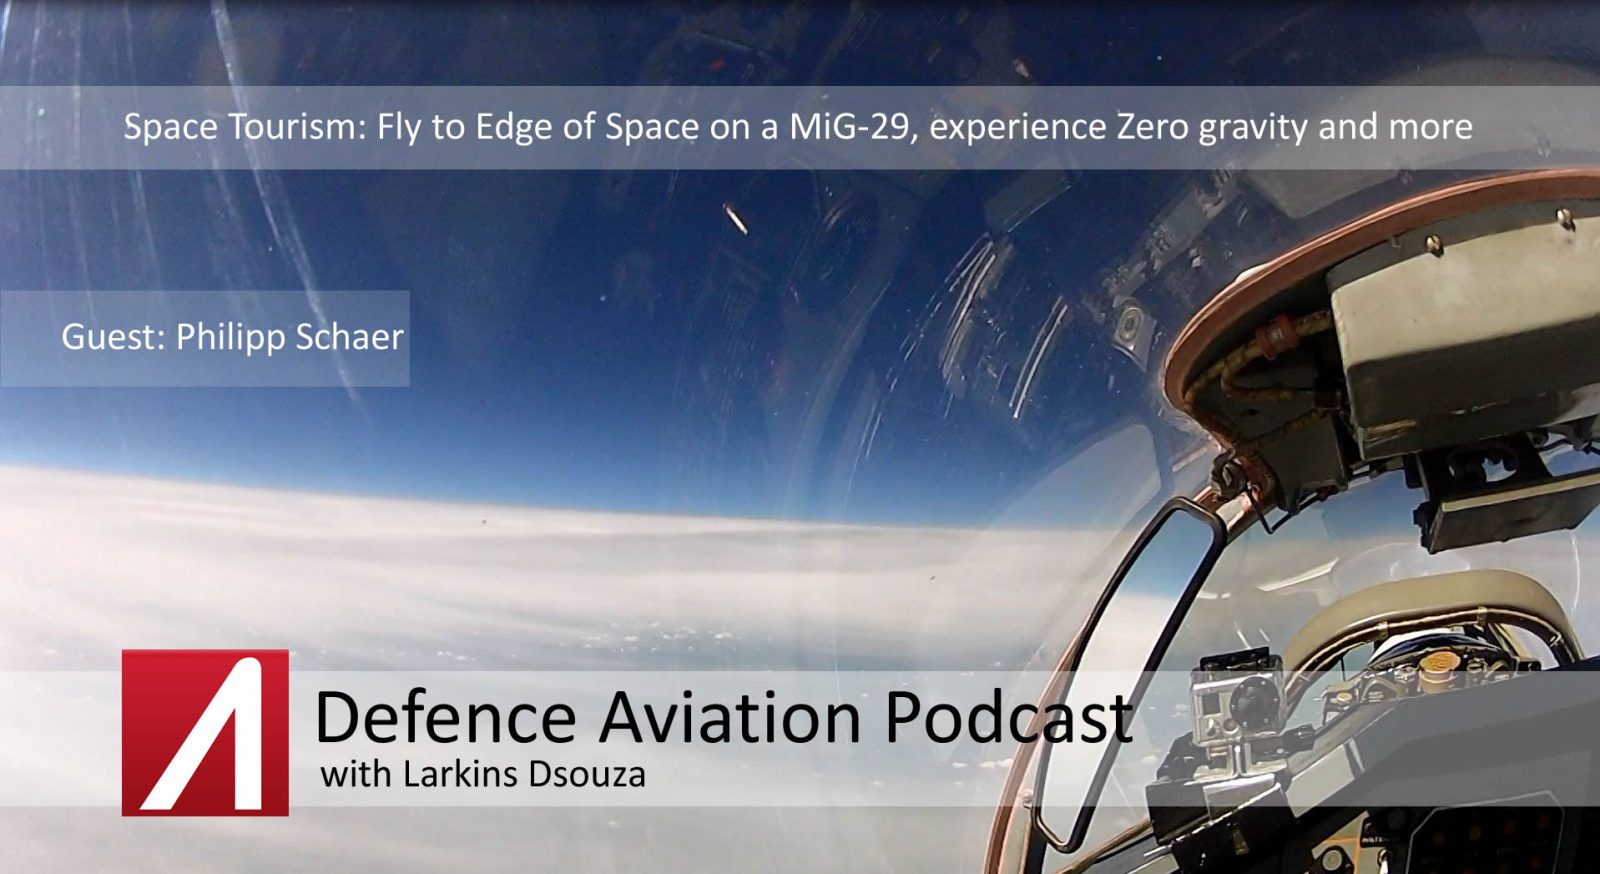 DA #6: Space Tourism - Fly to Edge of Space on a MiG-29, experience Zero gravity and more. An interview with Philipp Schaer of MiGFlug